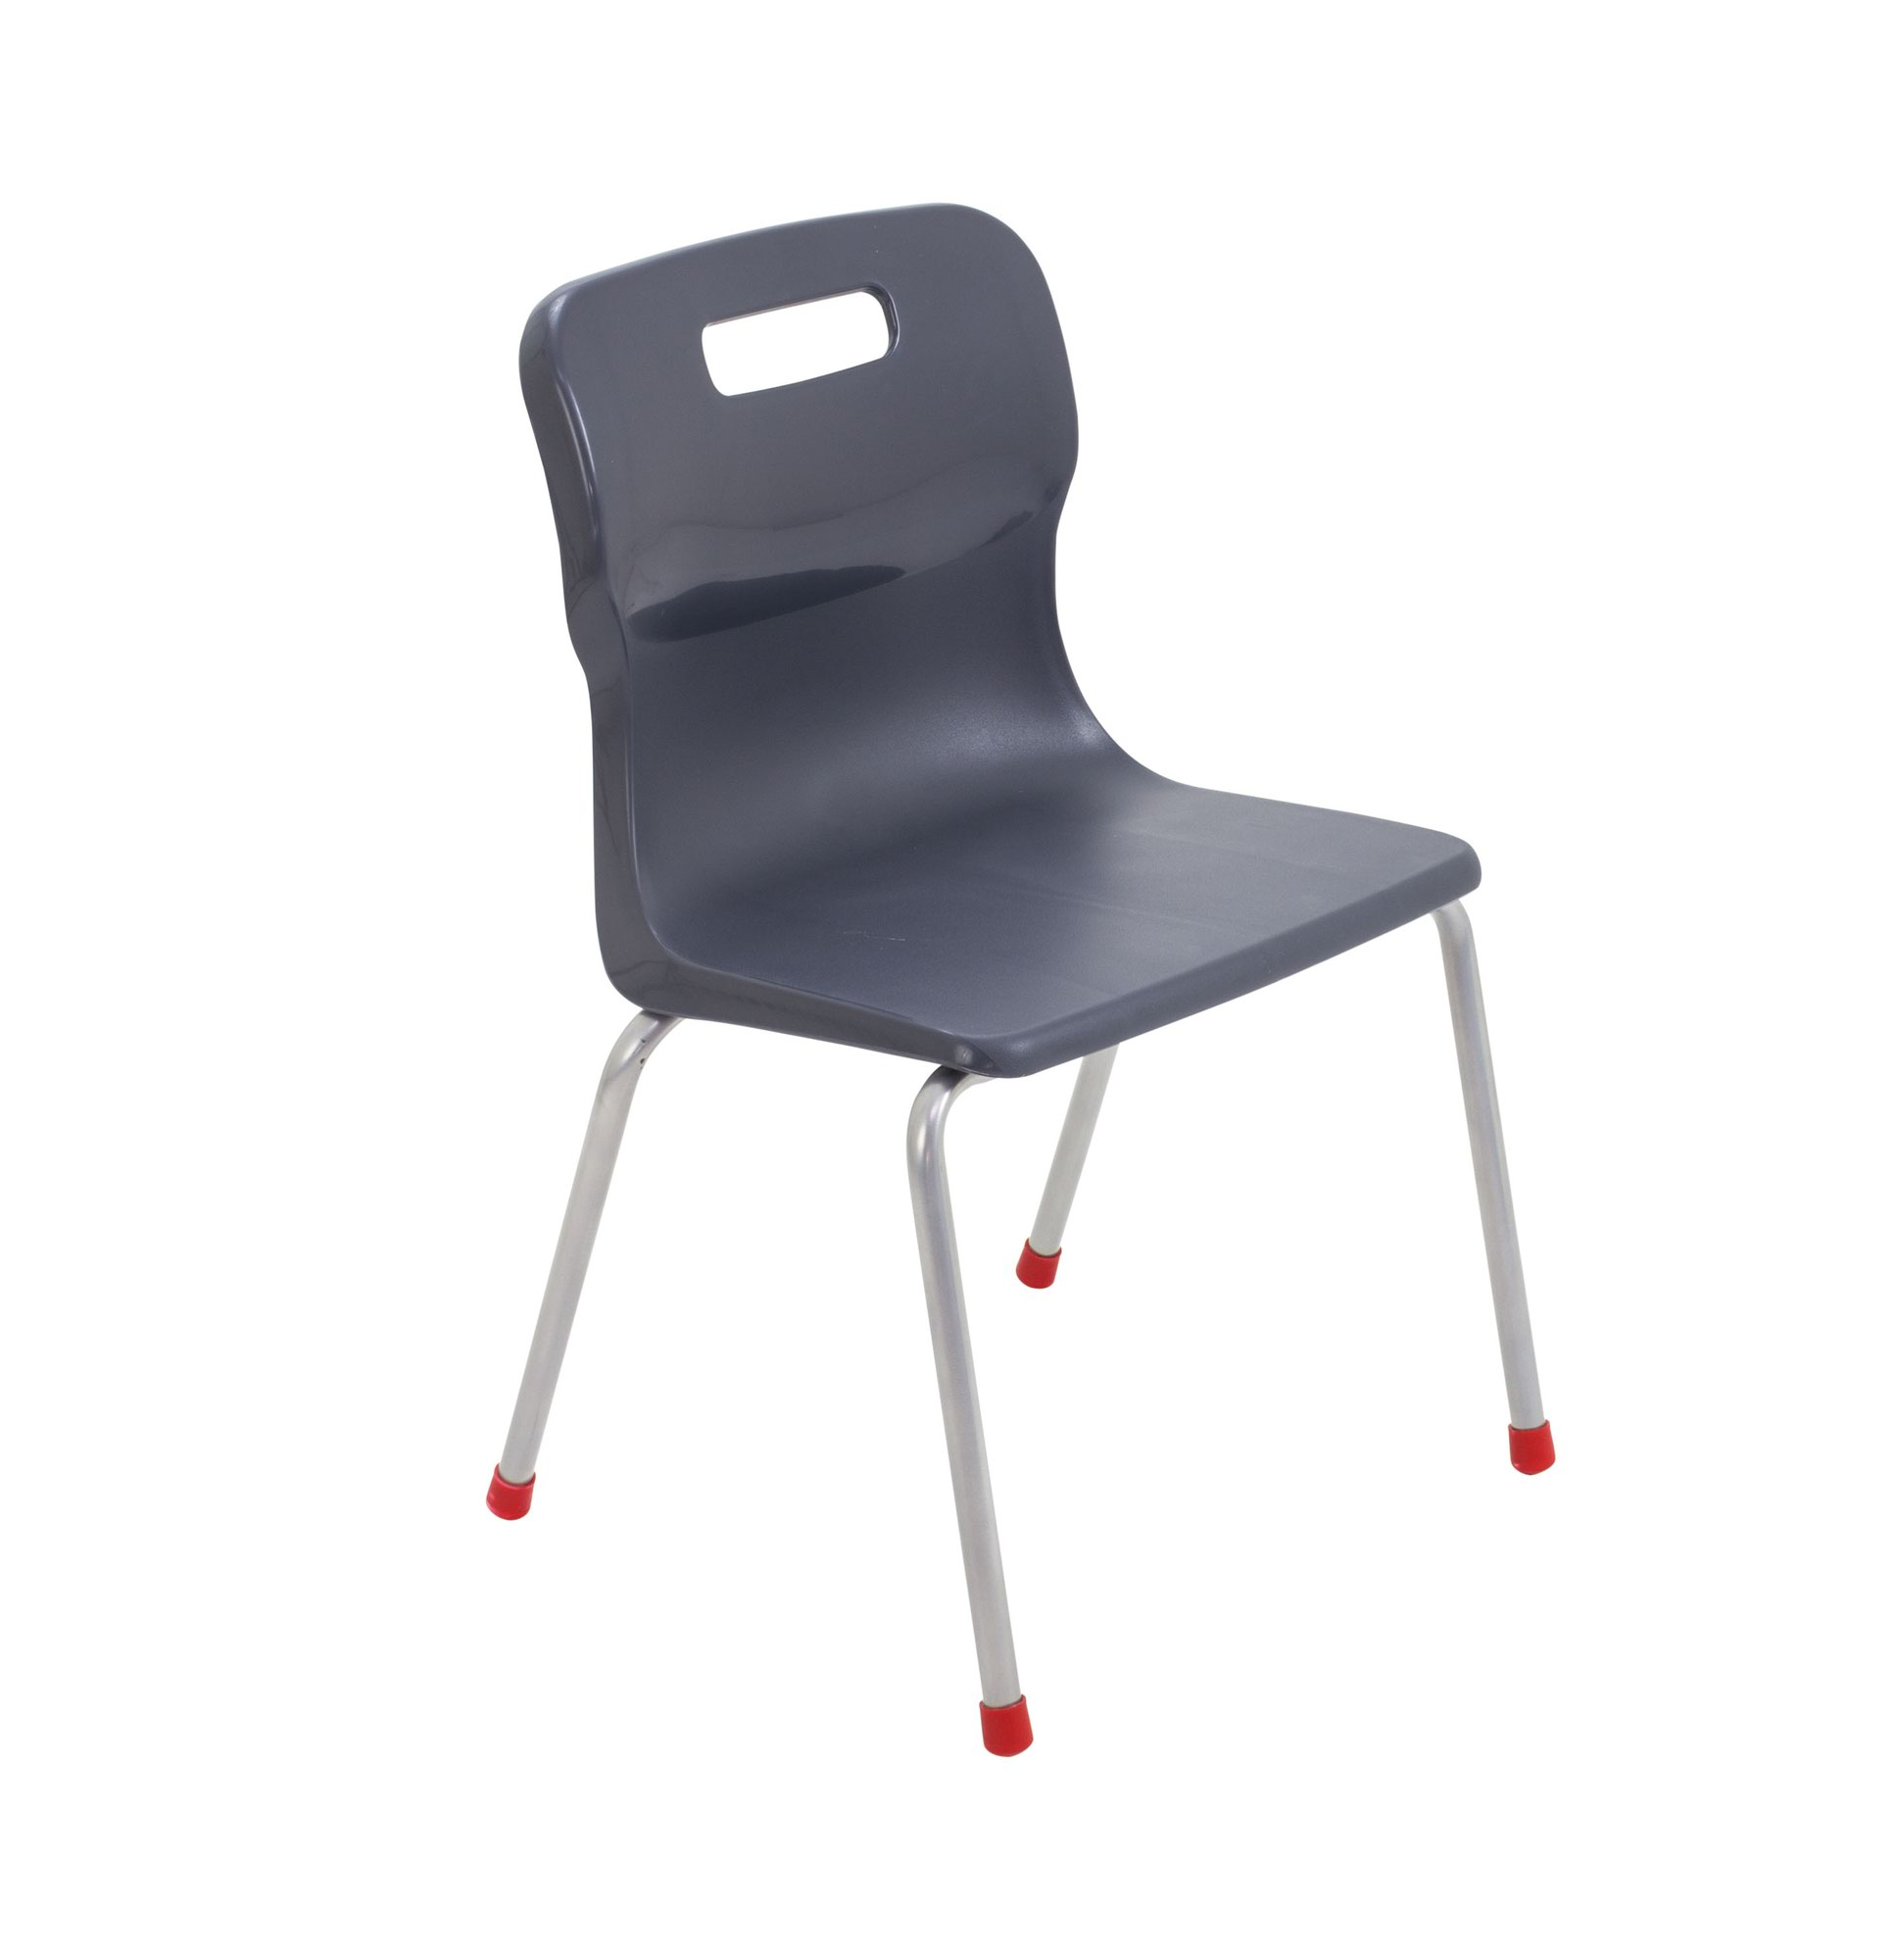 Titan Charcoal Size 4 School Chair With 4 Legs KF72187